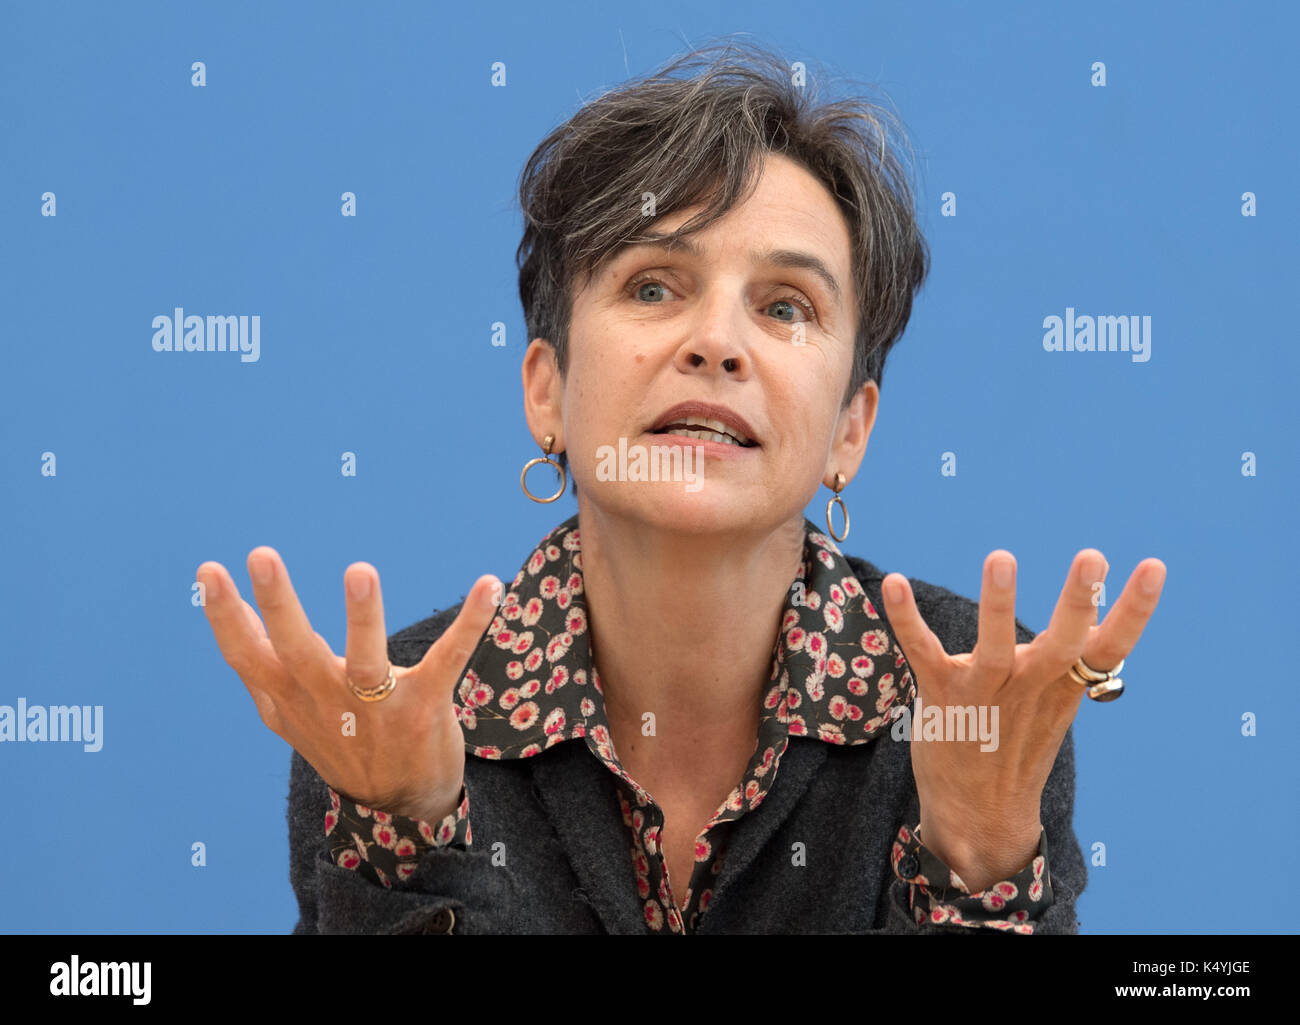 Berlin, Germany. 7th Sep, 2017. Joana Breidenbach, one of the founders of the donation platform betterplace.org, gives a talk at a press conference at which the newly founded environmental pressure group Generation Manifest presented its programme in Berlin, Germany, 7 September 2017. Prominent figures from civil society, science, economy, and politics founded the initiative in order to remind politicians of the dangers of the reckless endangerment of future generations. Photo: Soeren Stache/dpa/Alamy Live News - Stock Image